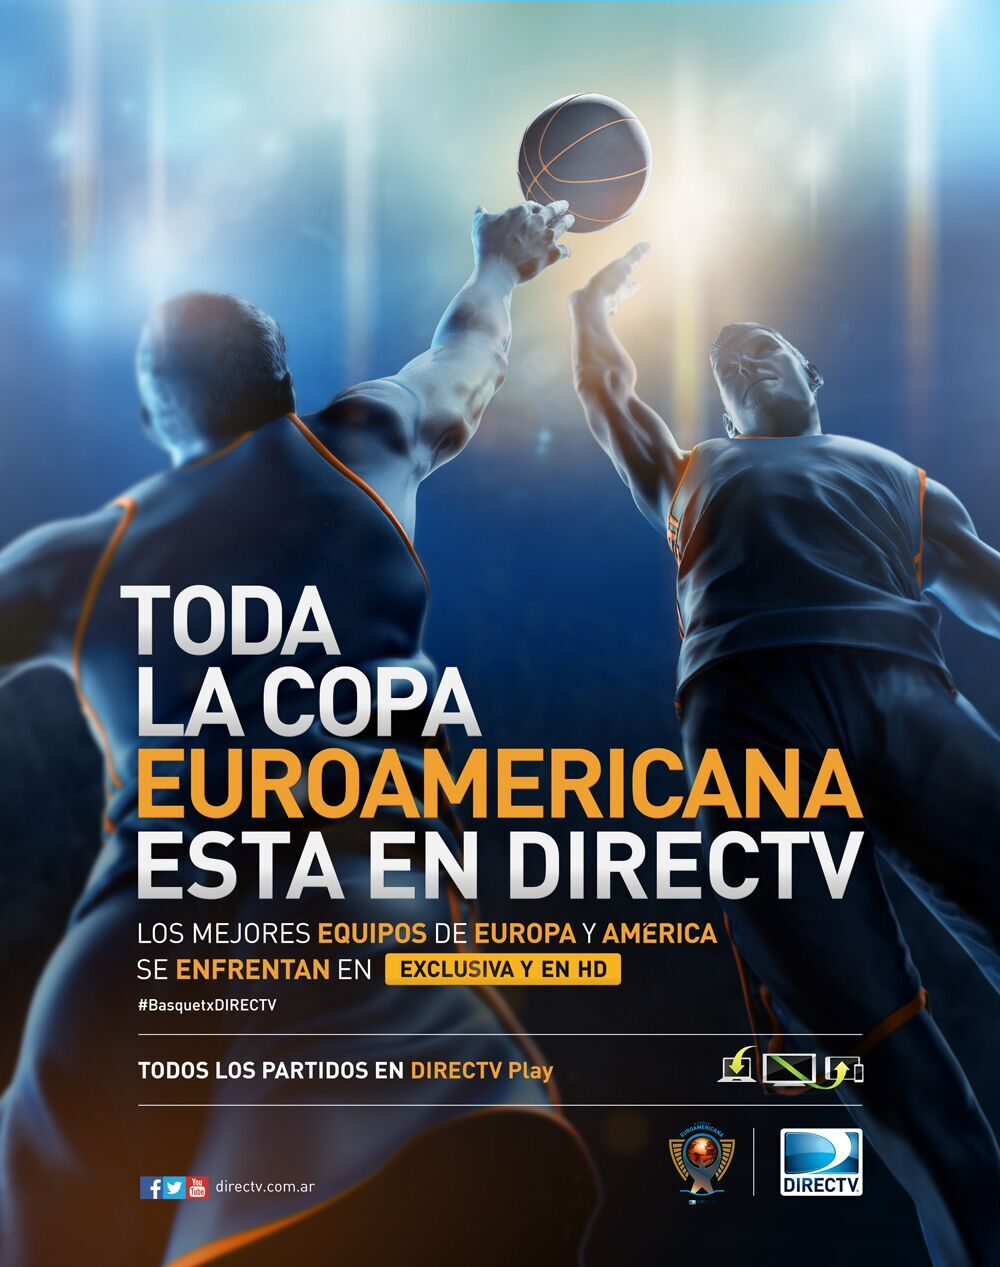 EURO AMERICANA / BASQUET FULL PAGE